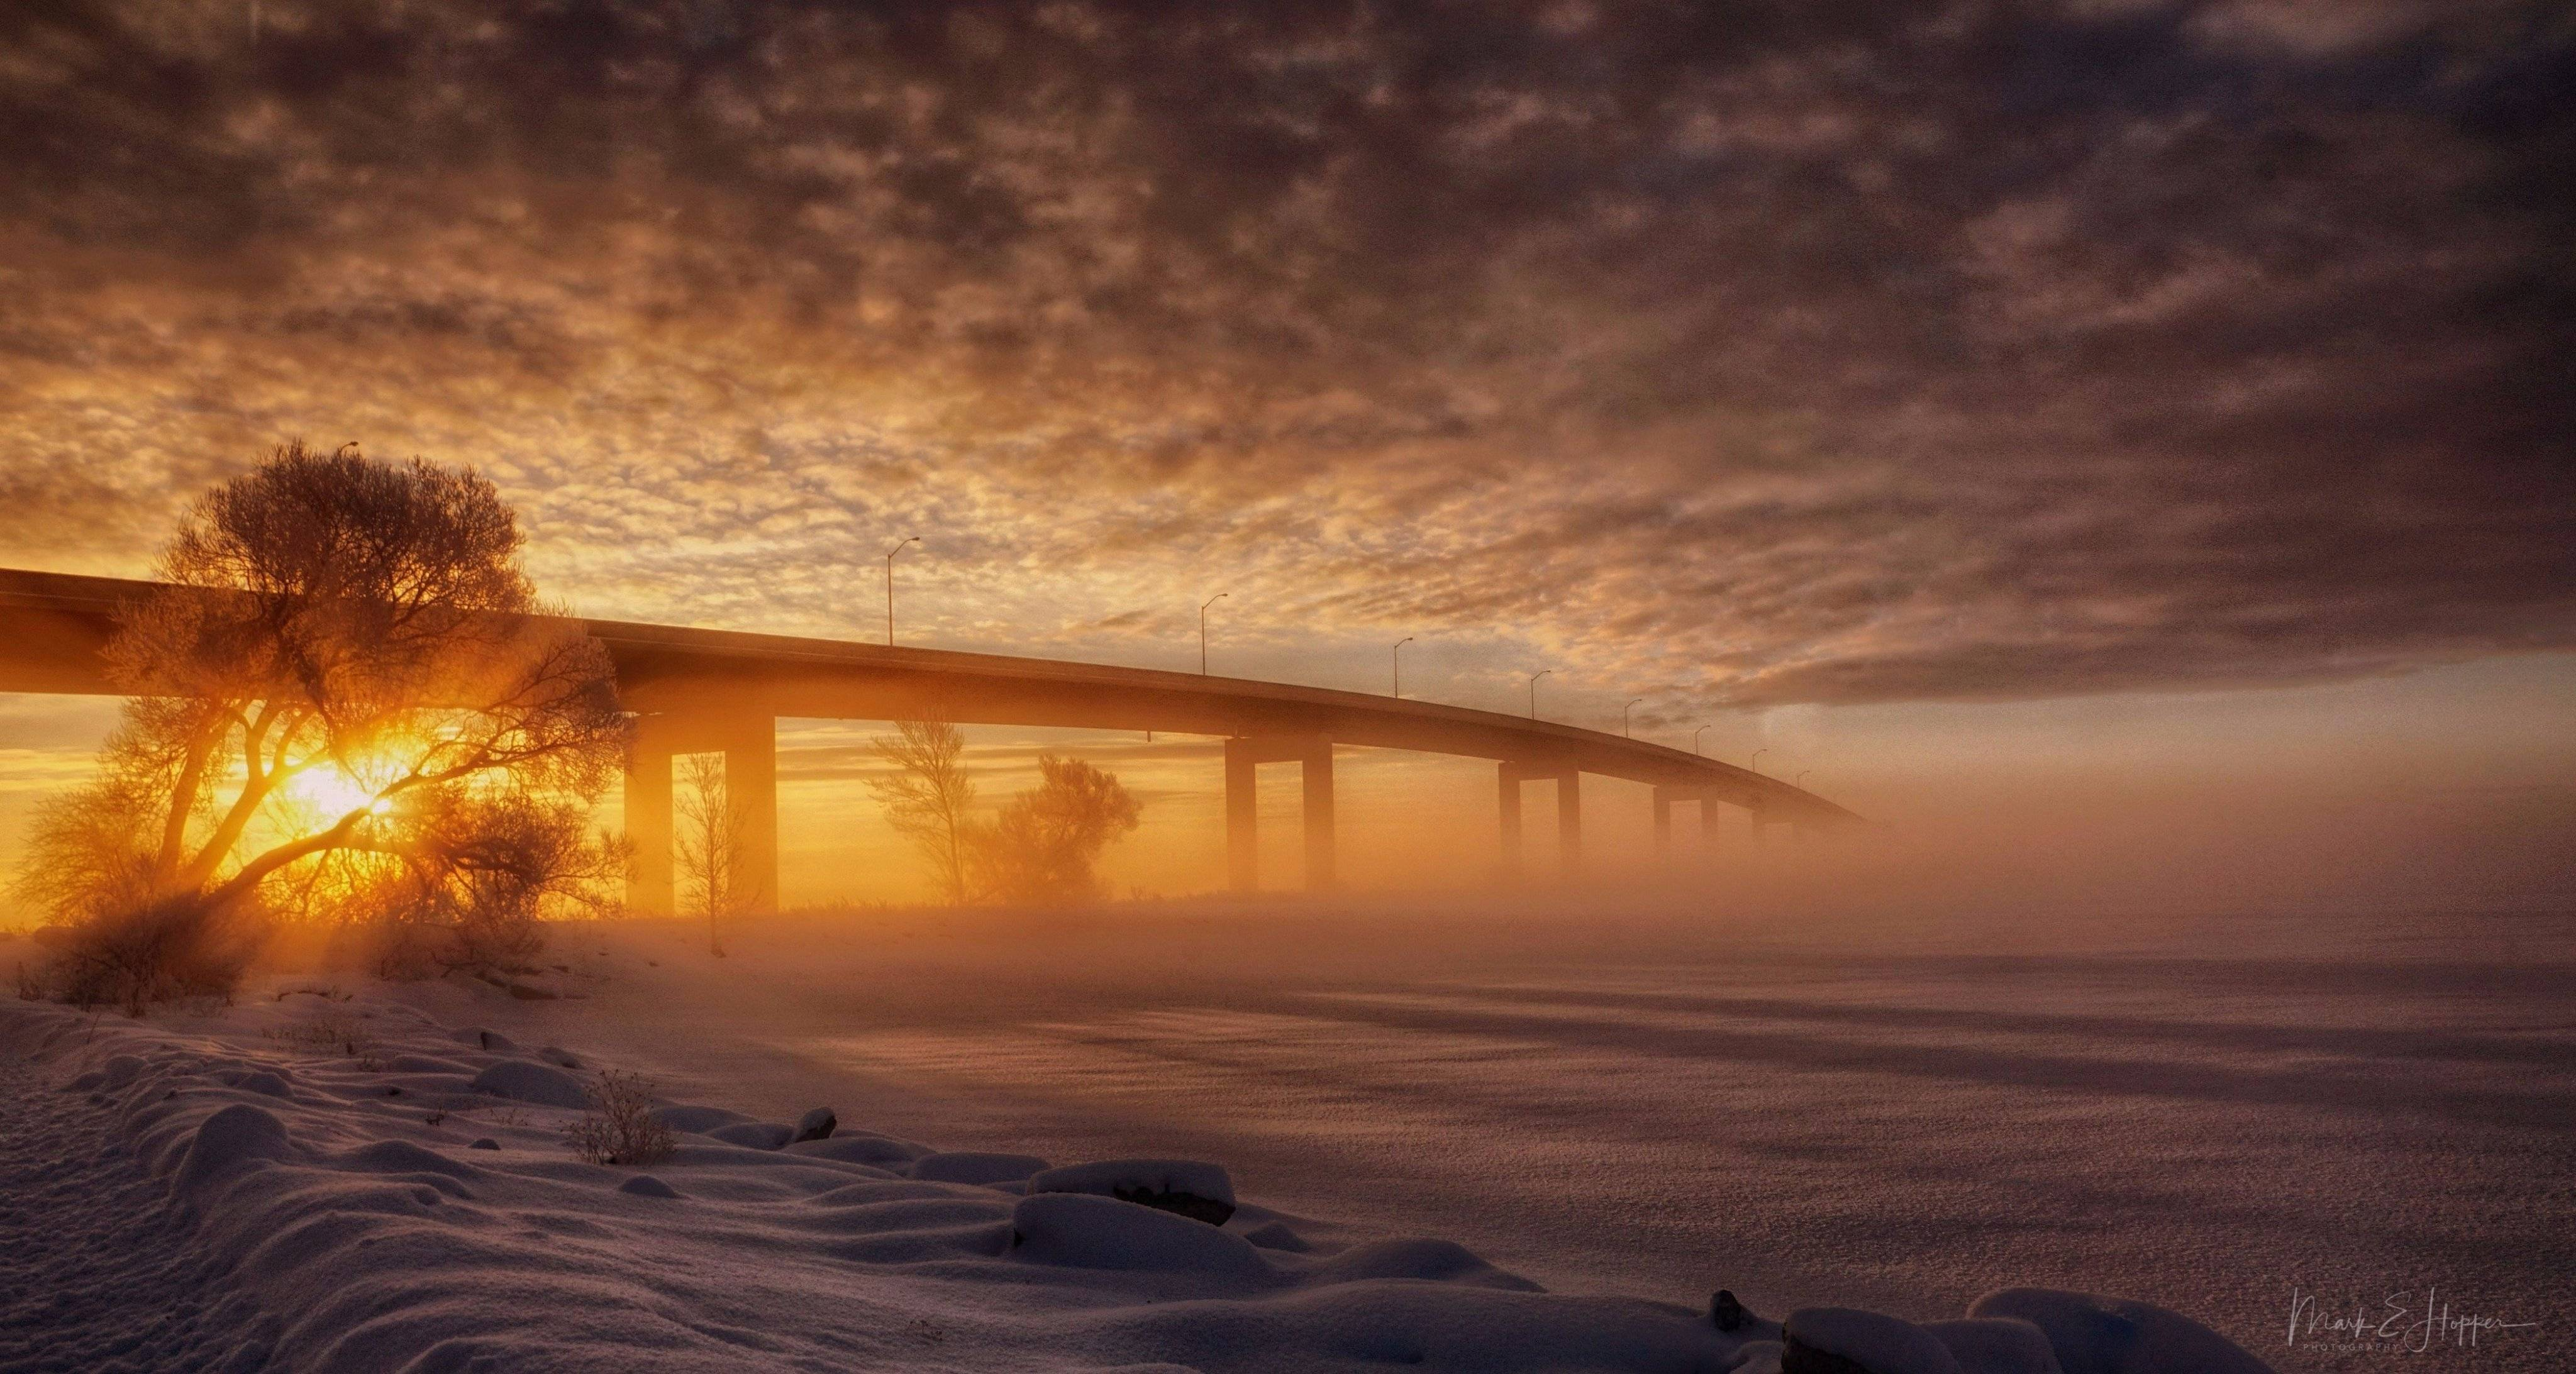 1st Place Winter happens...cross that bridge when we get to it, Ontario by Mark Hopper @hoppermark